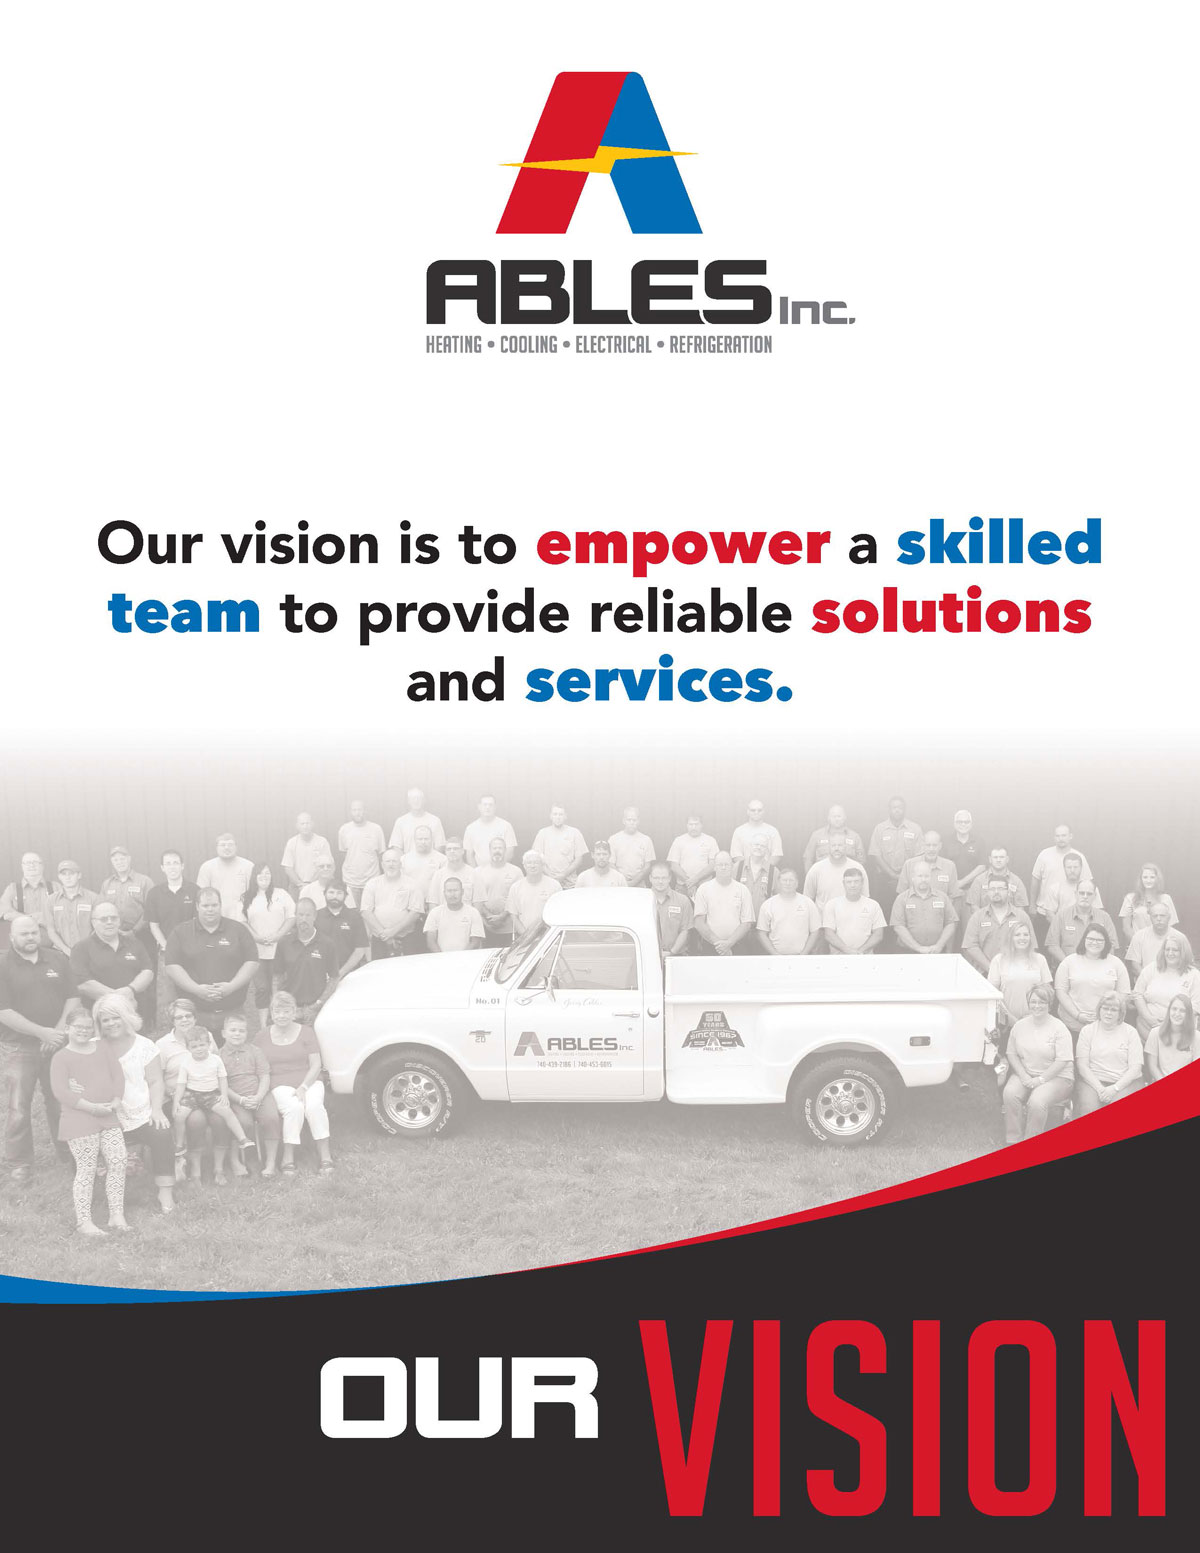 Ables Inc Mission Vision Values 2